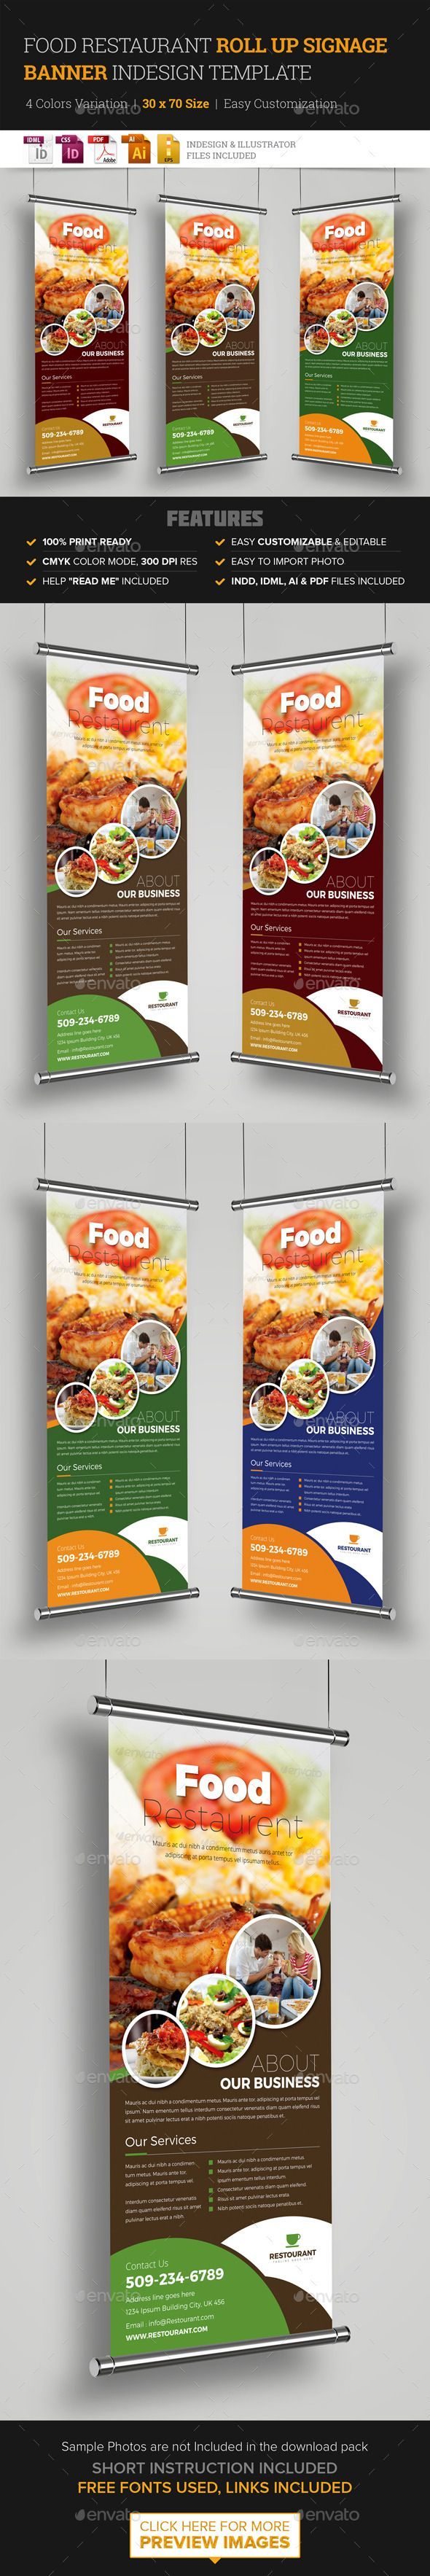 48 best banner images on pinterest  banner design banners and